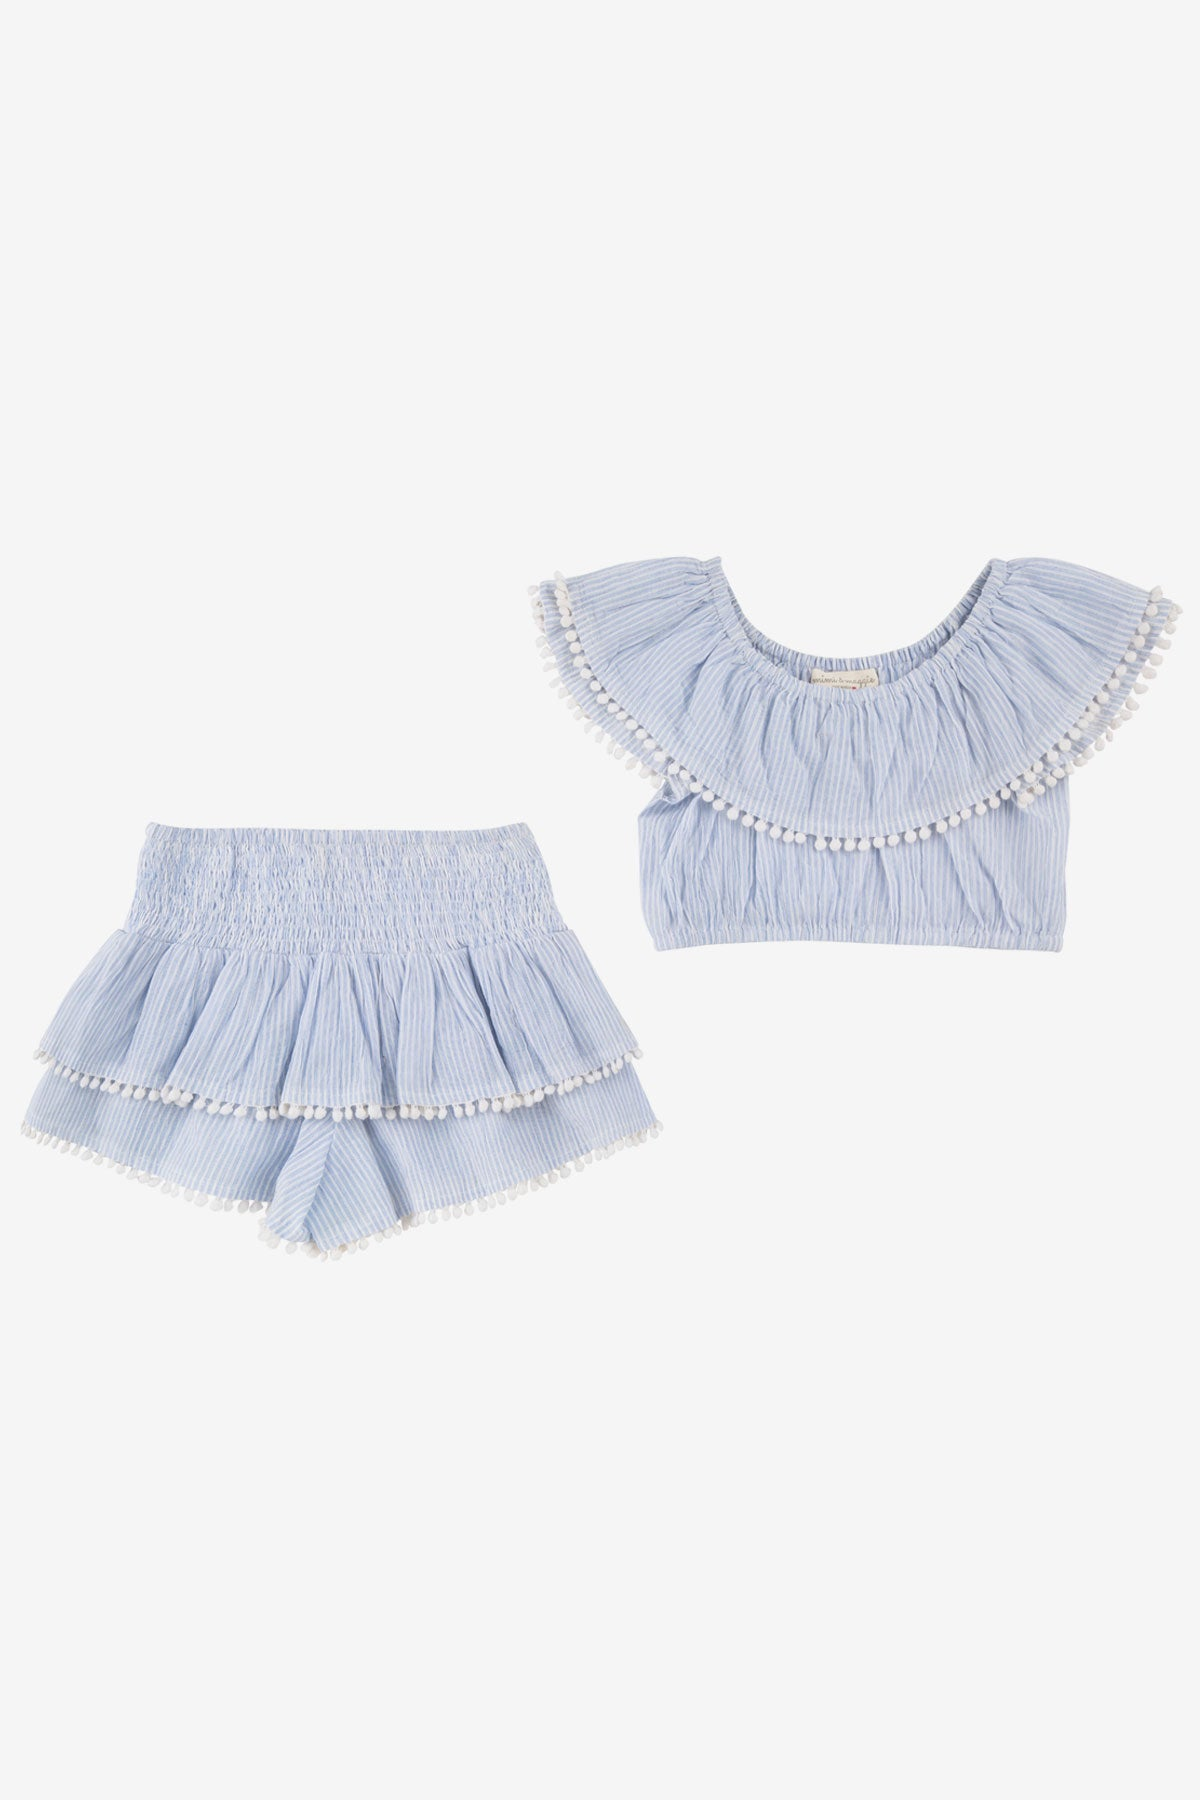 Mimi & Maggie Allie Ruffle Crop Top And Tiered Skort